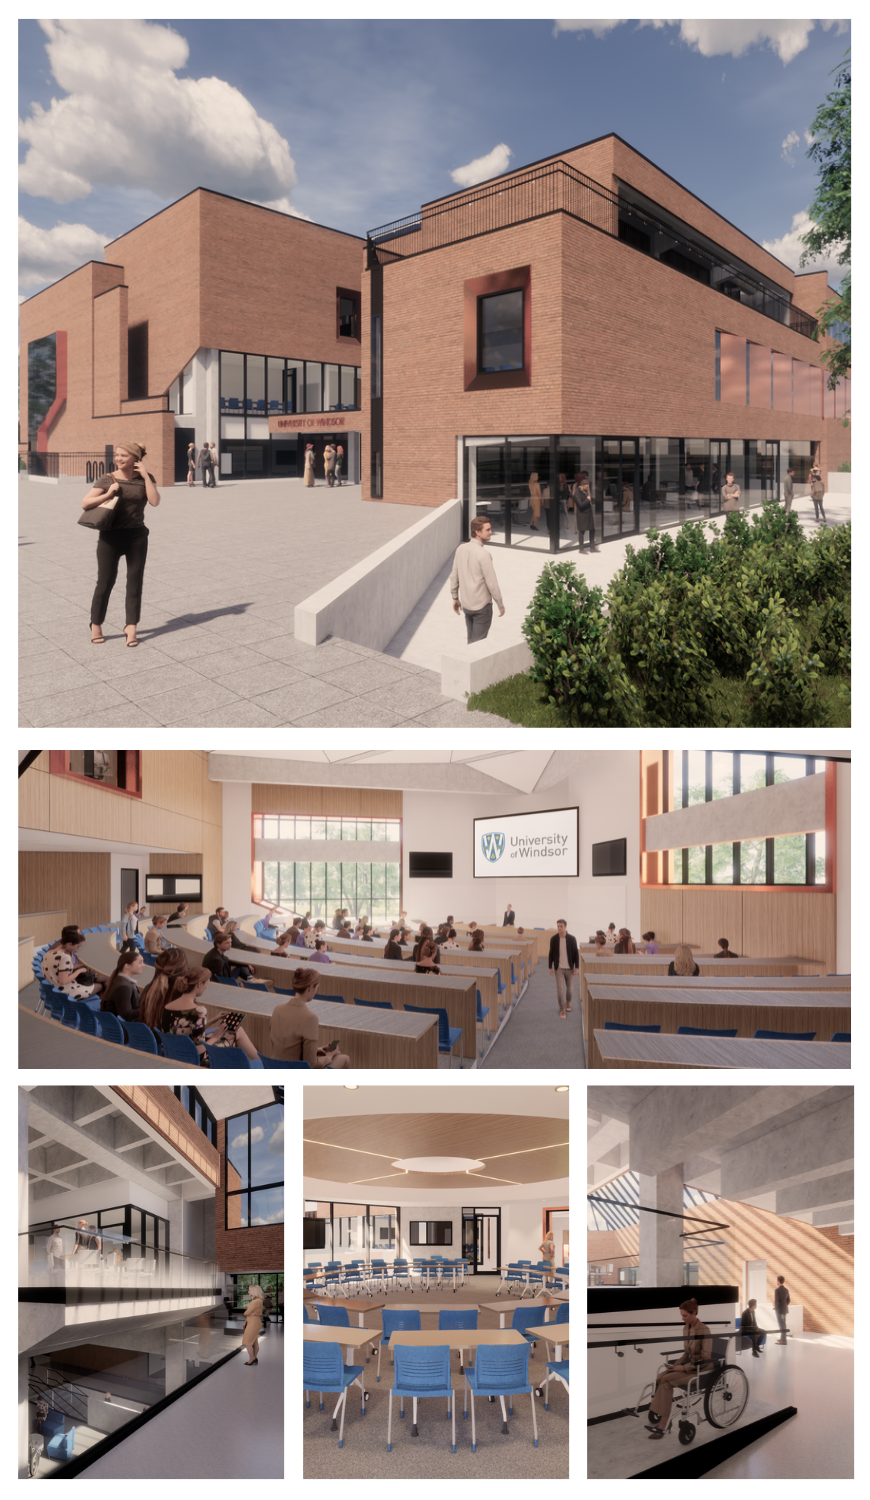 Rendering of the exterior and inside of the new Windsor Law building